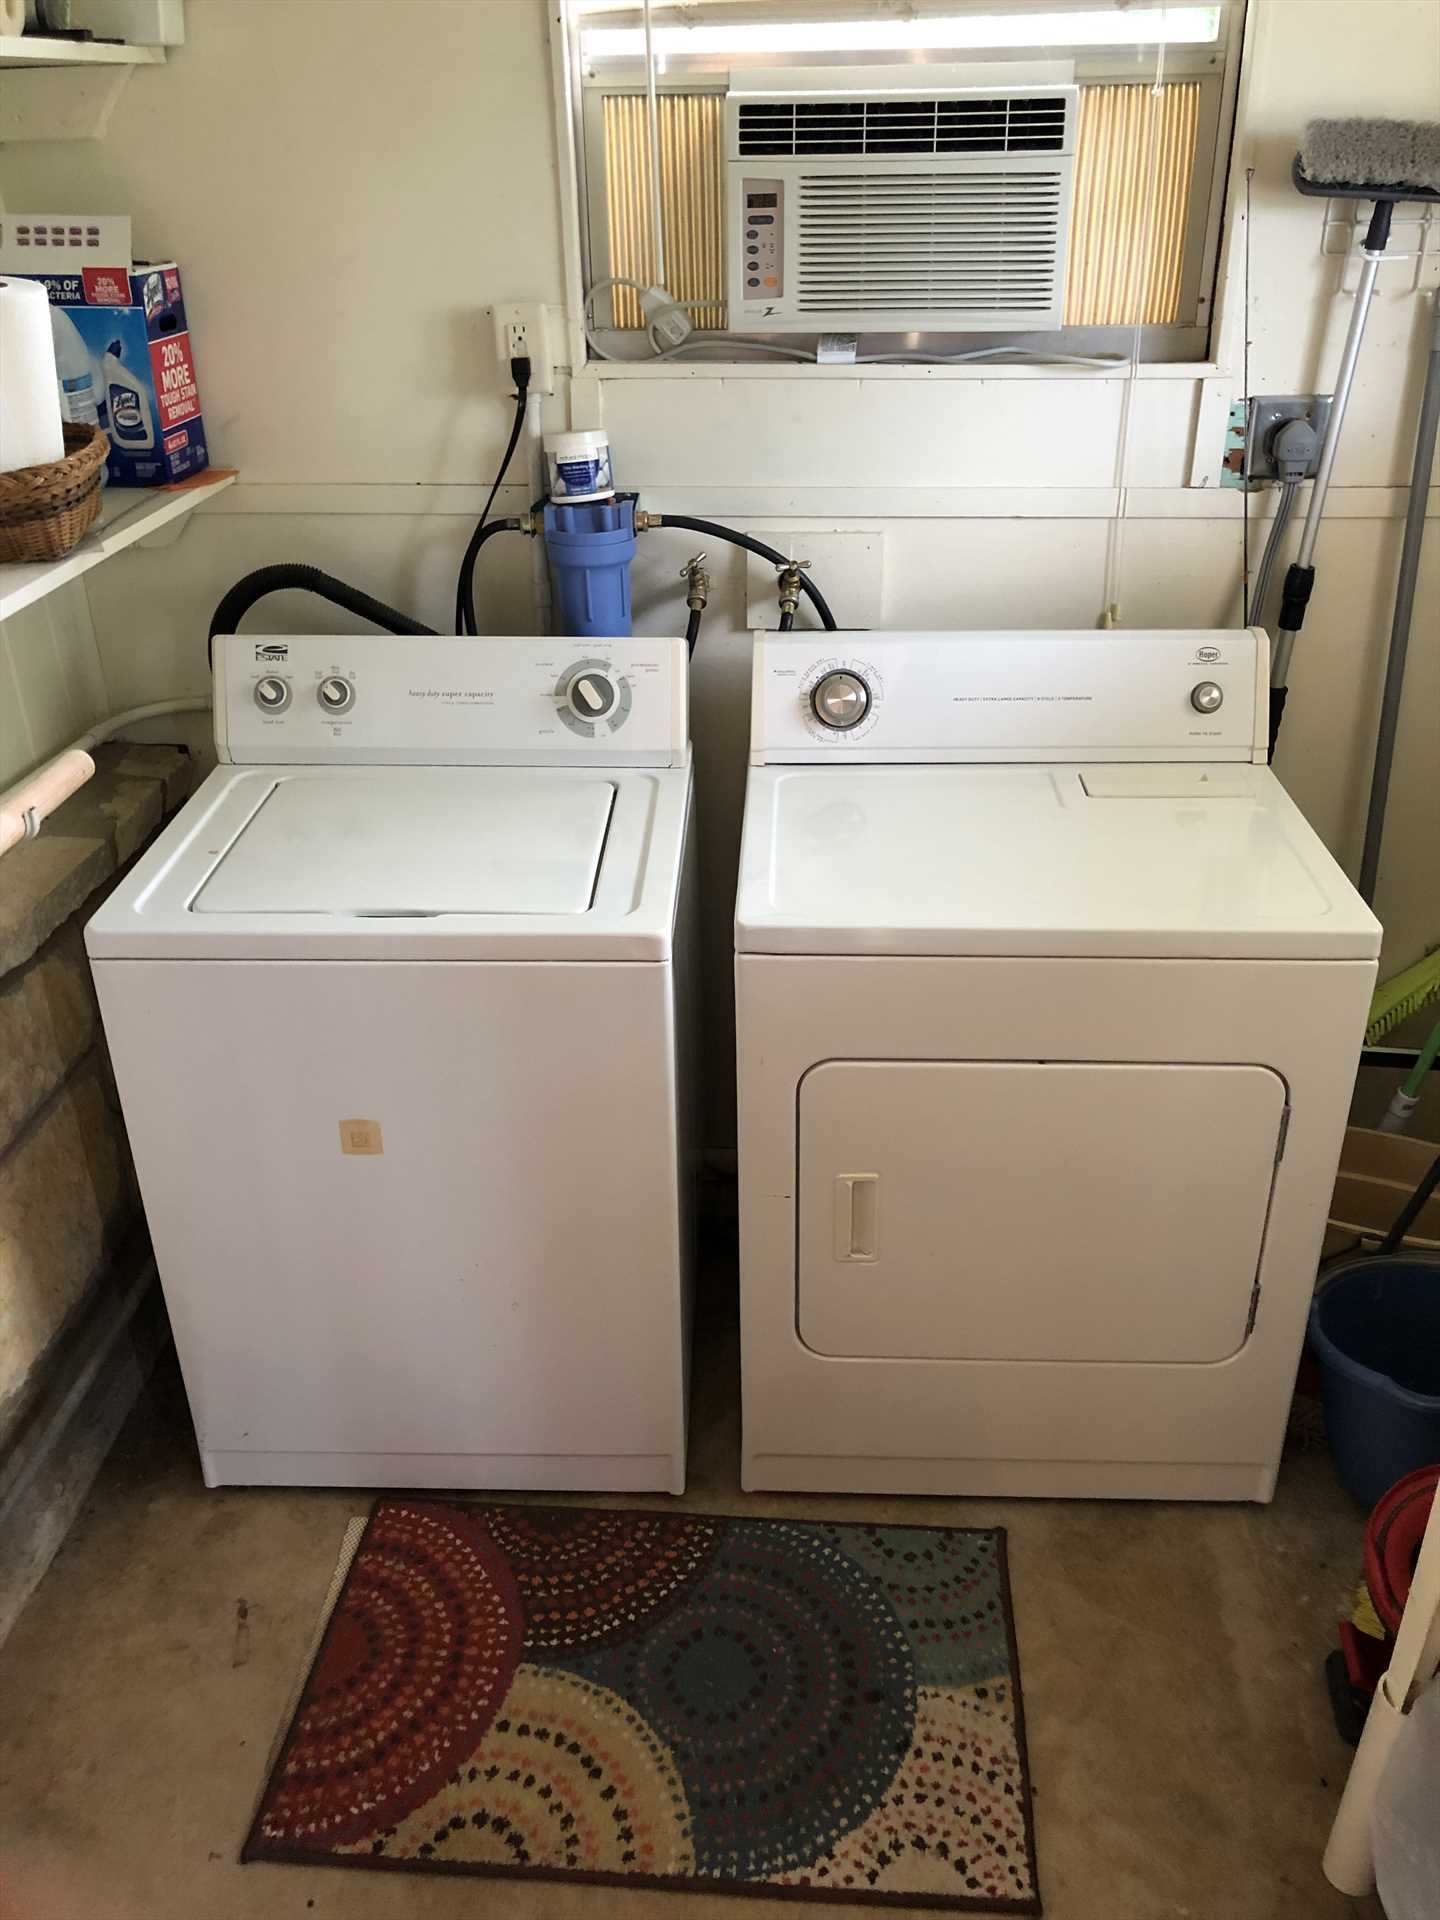 Take home river memories, but not mildewed clothing! The washer and dryer here will keep everything clean and fresh.